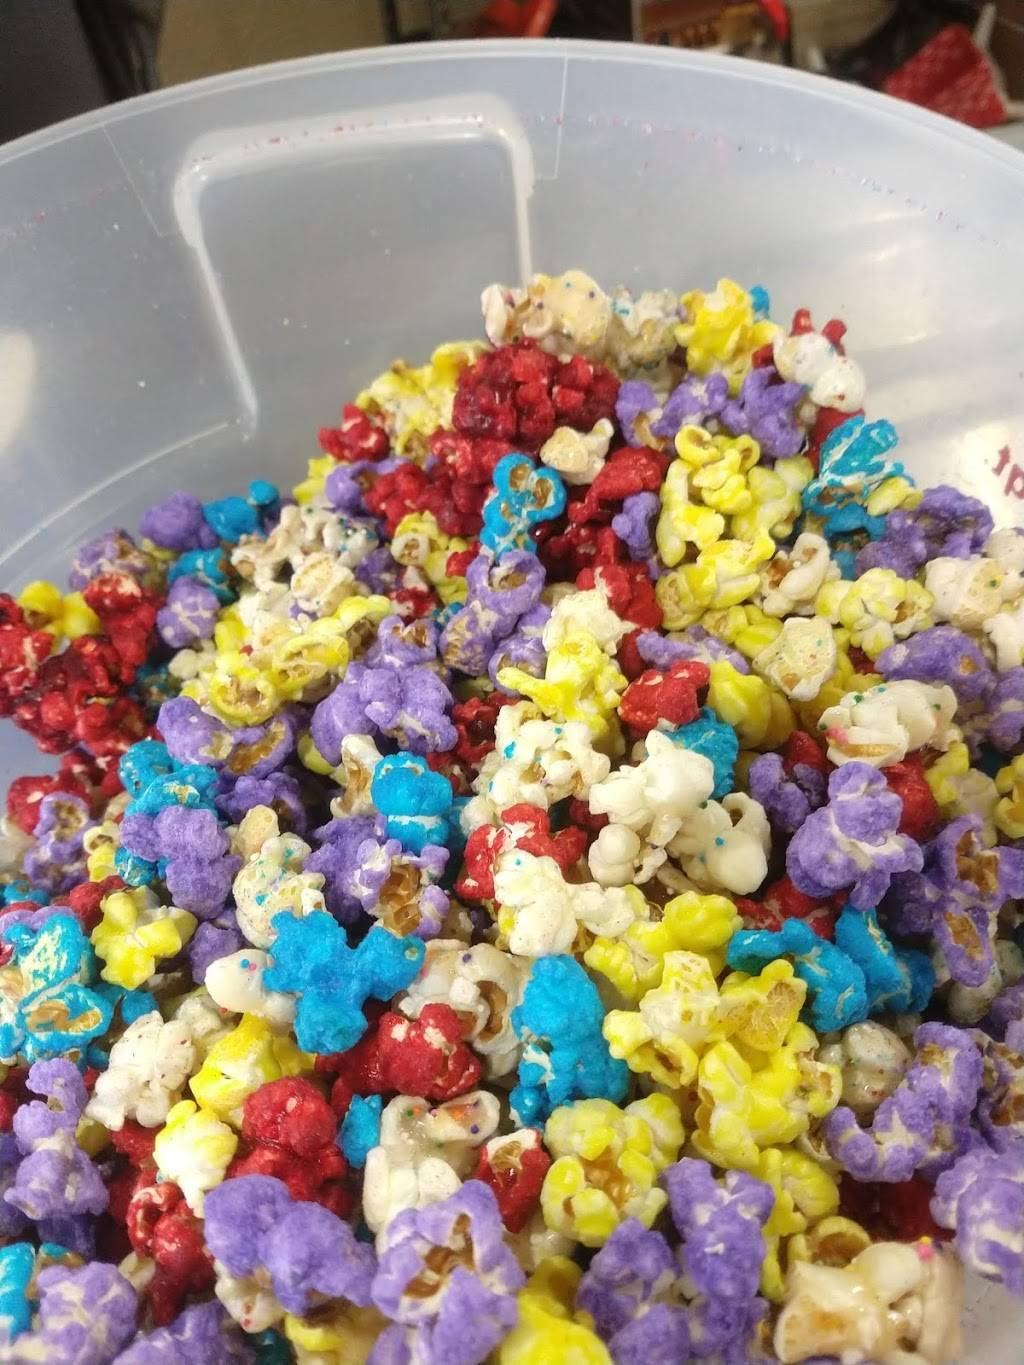 Pops Popped Gourmet Popcorn and More. - home goods store  | Photo 3 of 6 | Address: 3450 W Carefree Cir, Colorado Springs, CO 80917, USA | Phone: (719) 635-2242